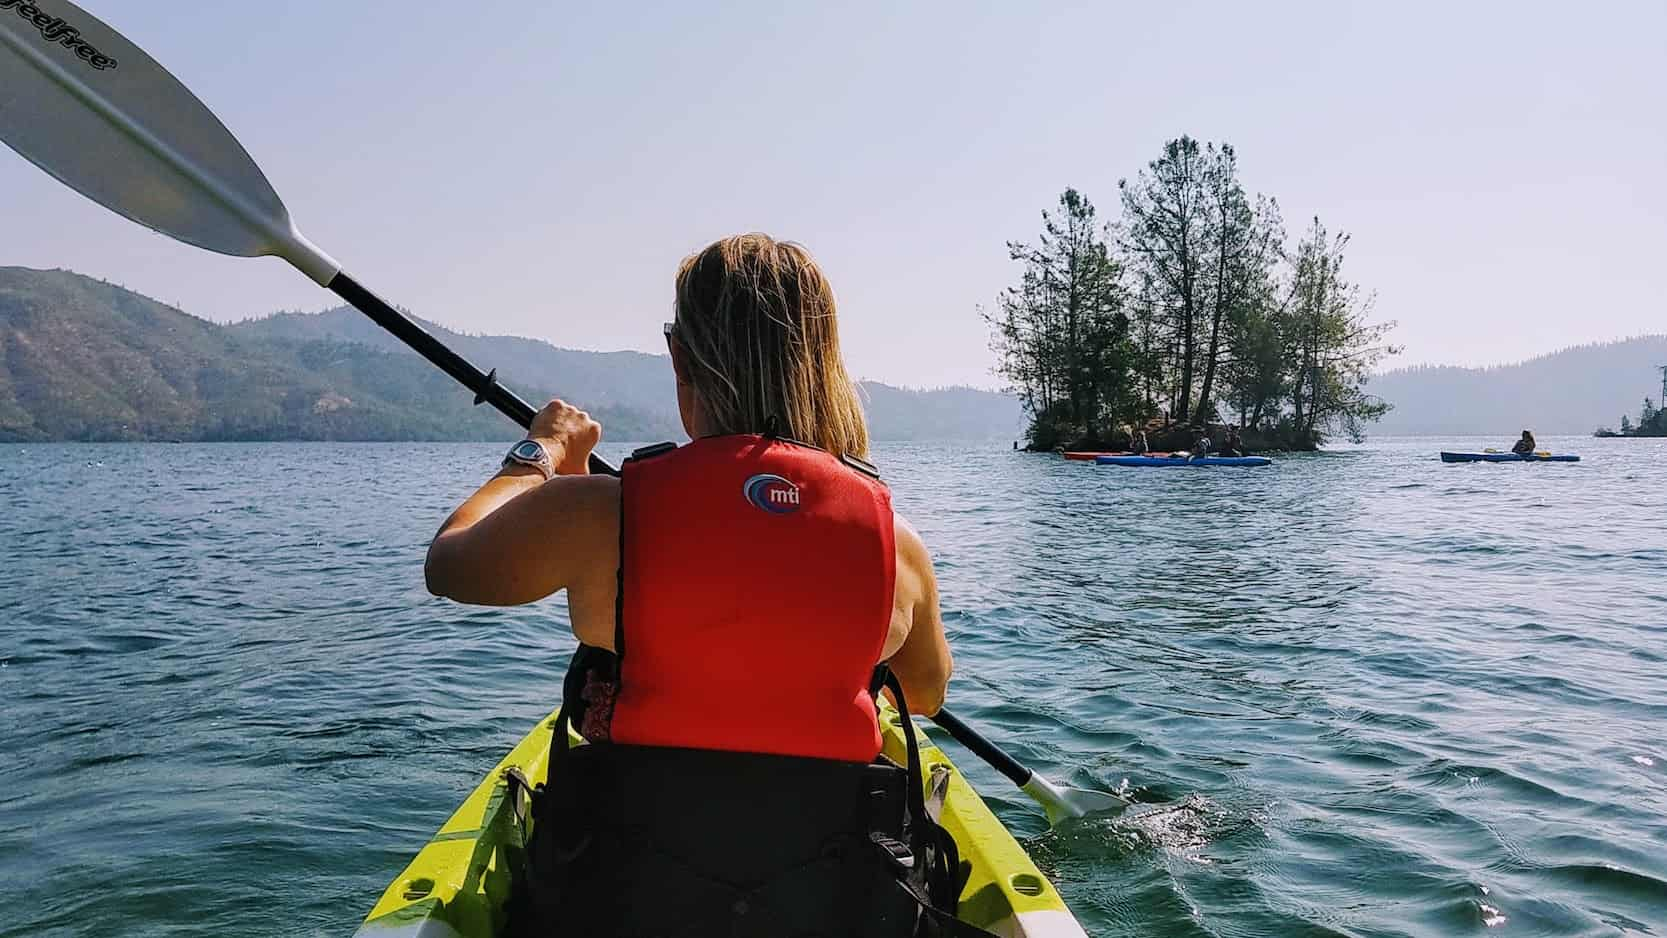 things to do in northern california - kayak at whiskeytown lake